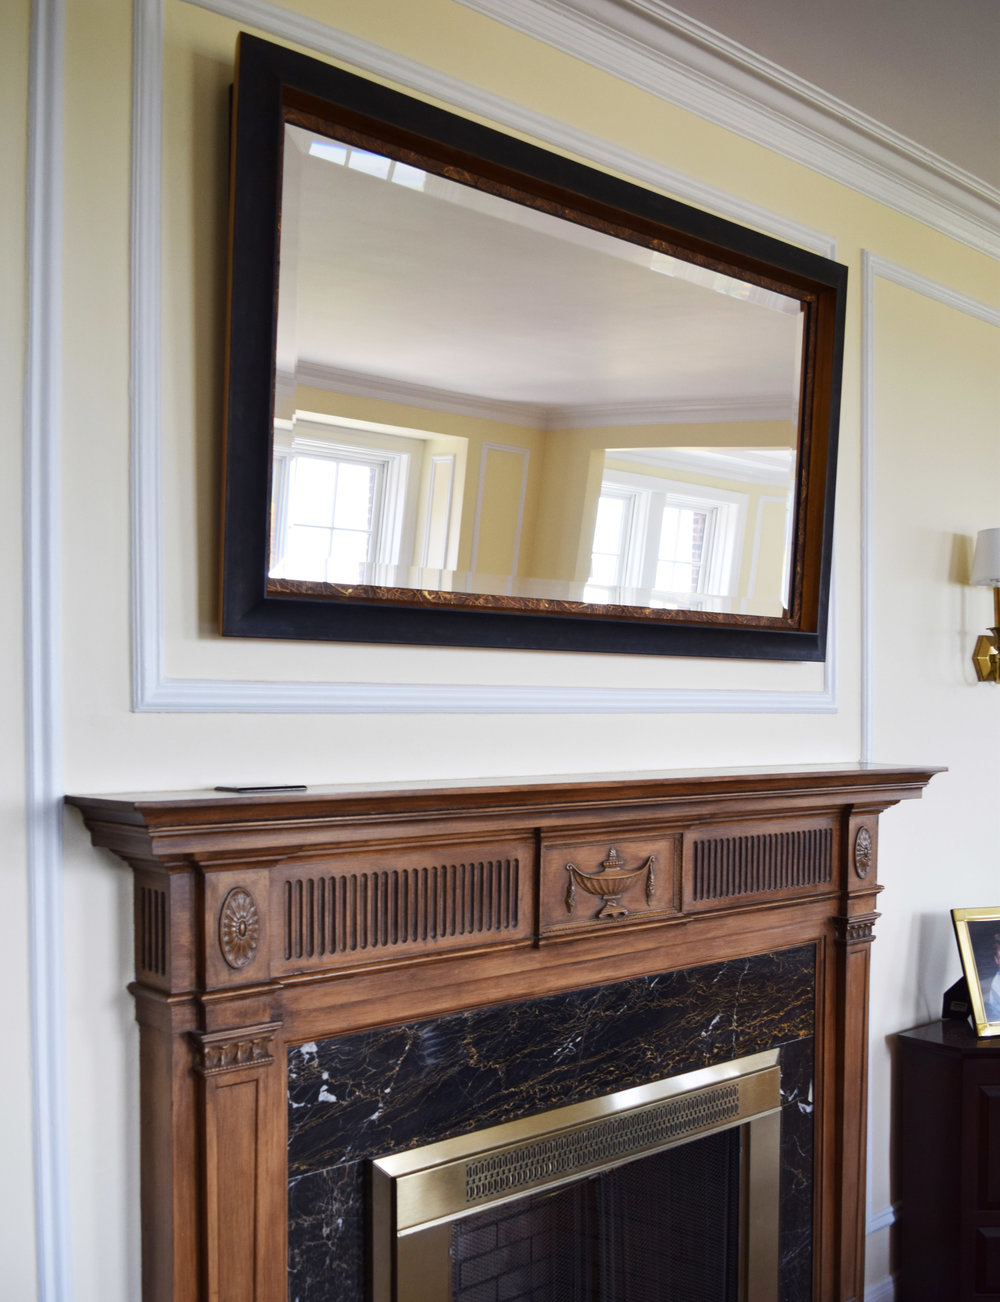 THE MIRROR IS INSTALLED AT AN ANGLE TO BRING THE BEAUTIFUL OUTSIDE IN